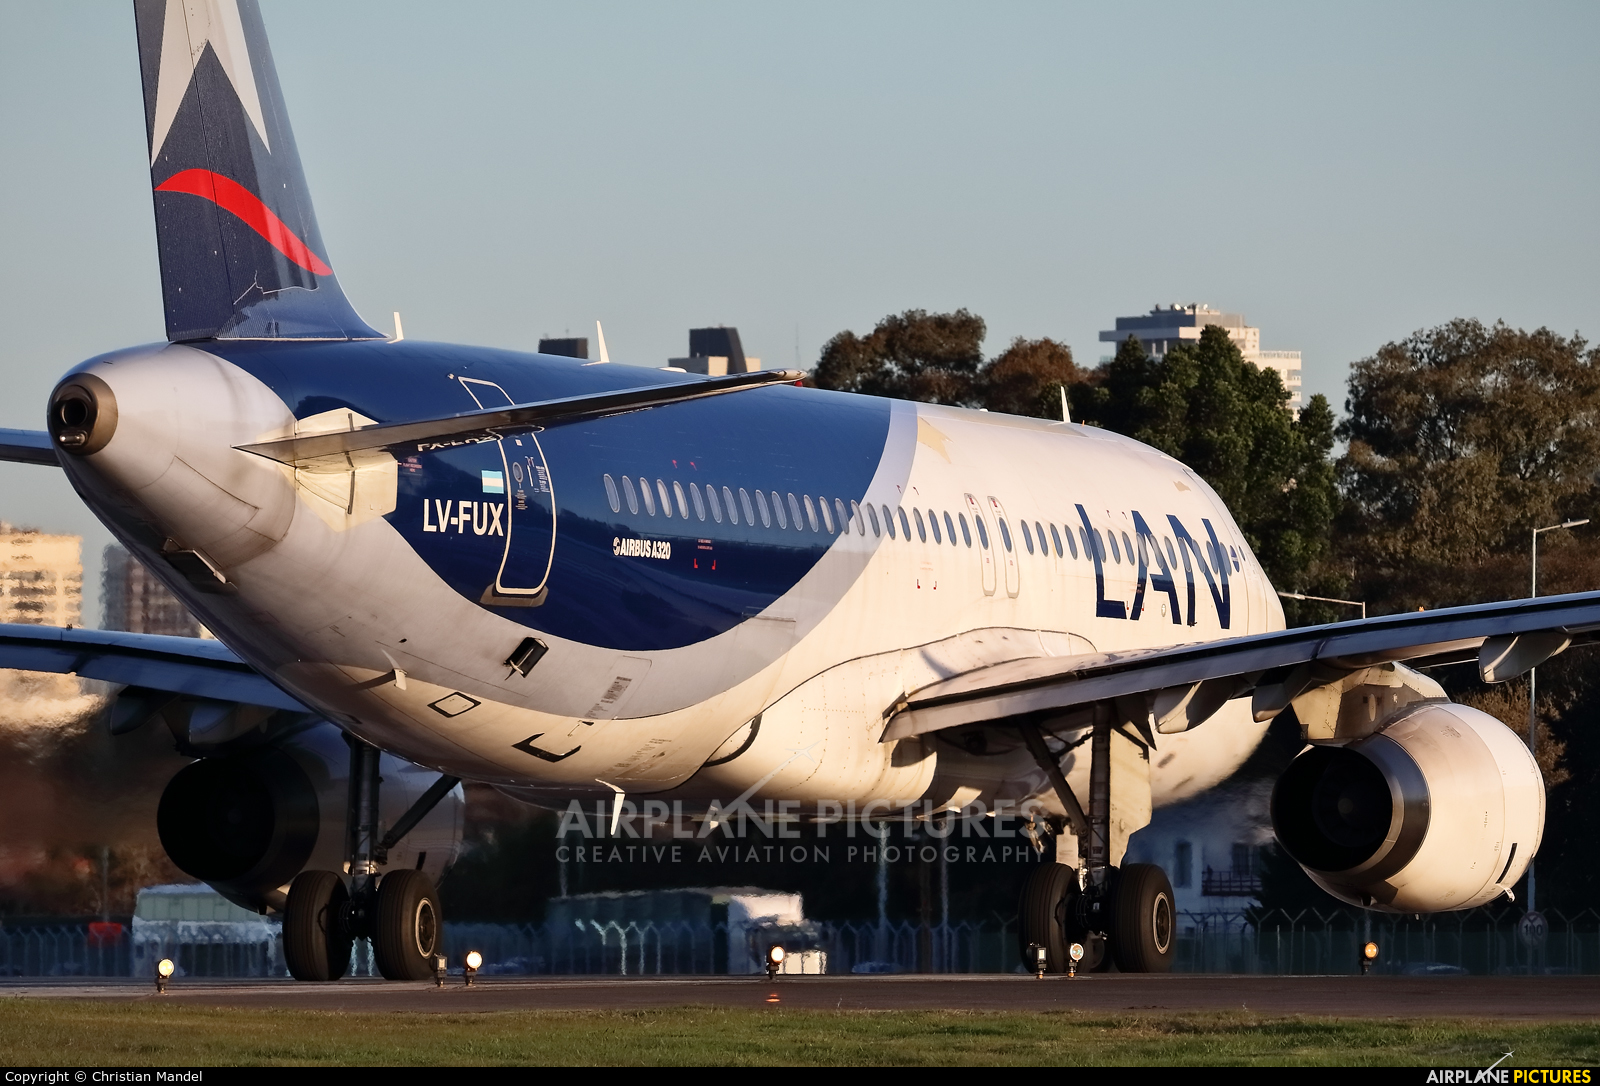 LAN Argentina LV-FUX aircraft at Buenos Aires - Jorge Newbery